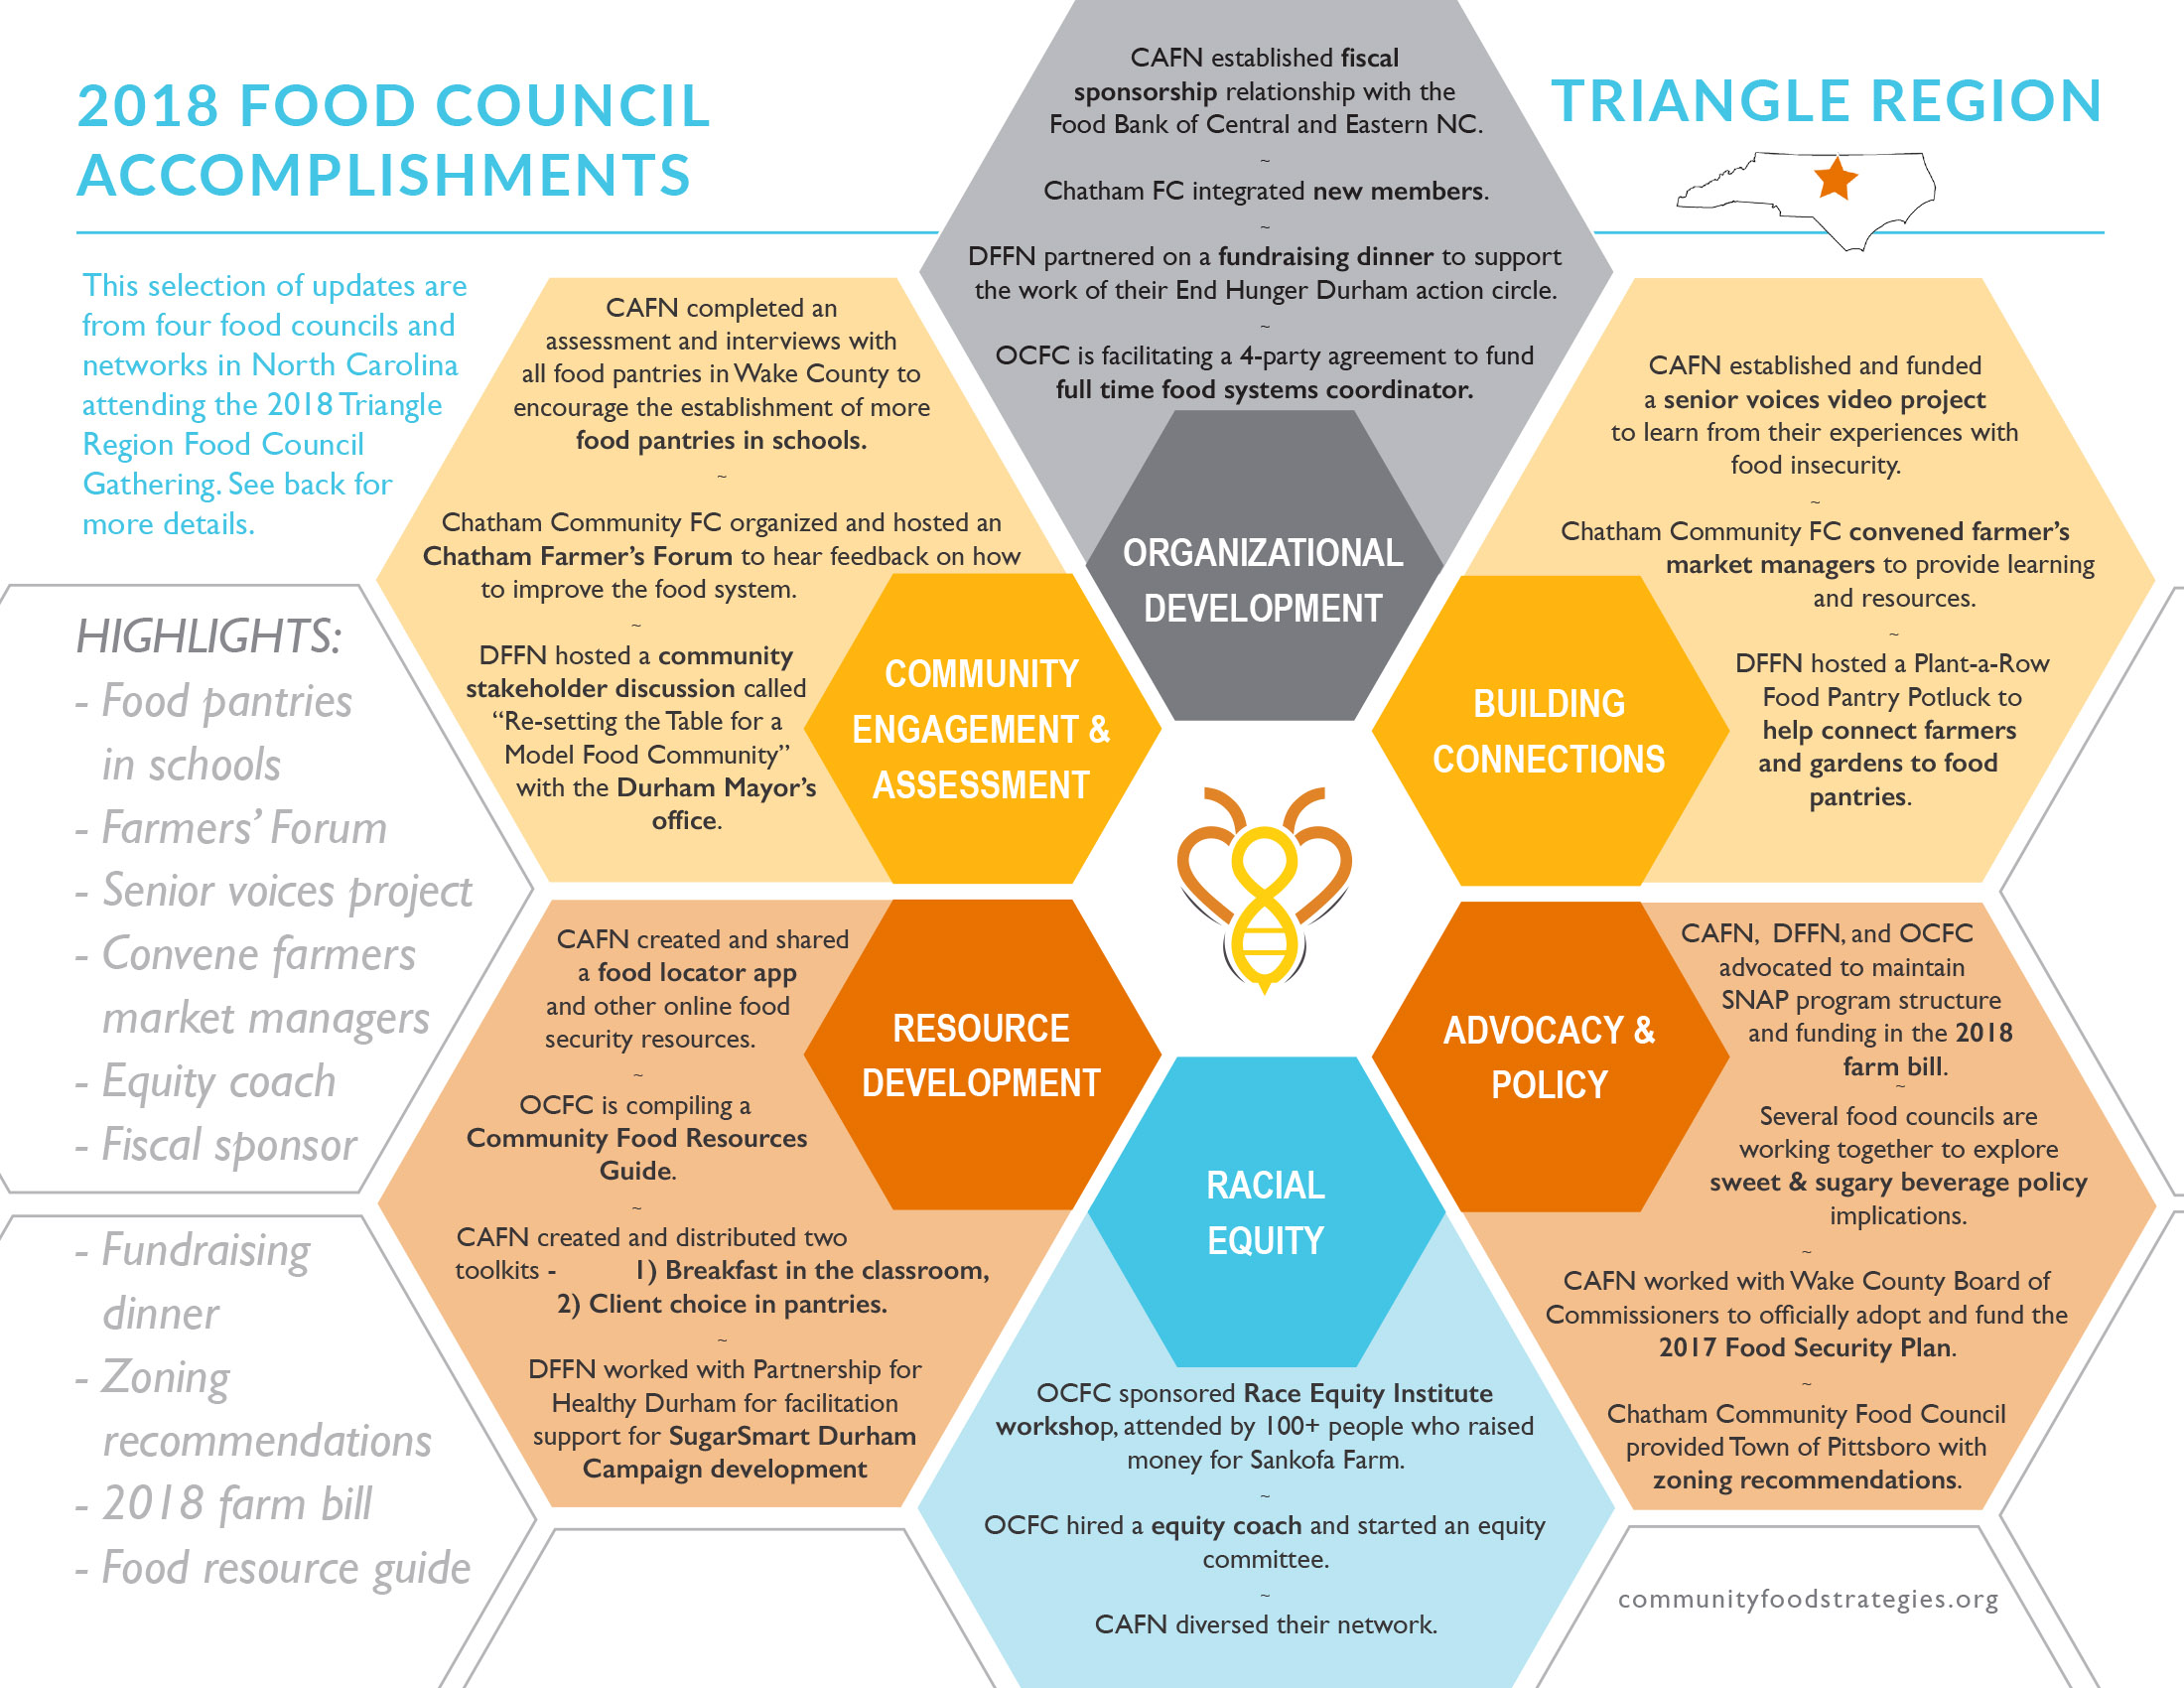 View a compilation of 2018 food council accomplishments in the Triangle region here.